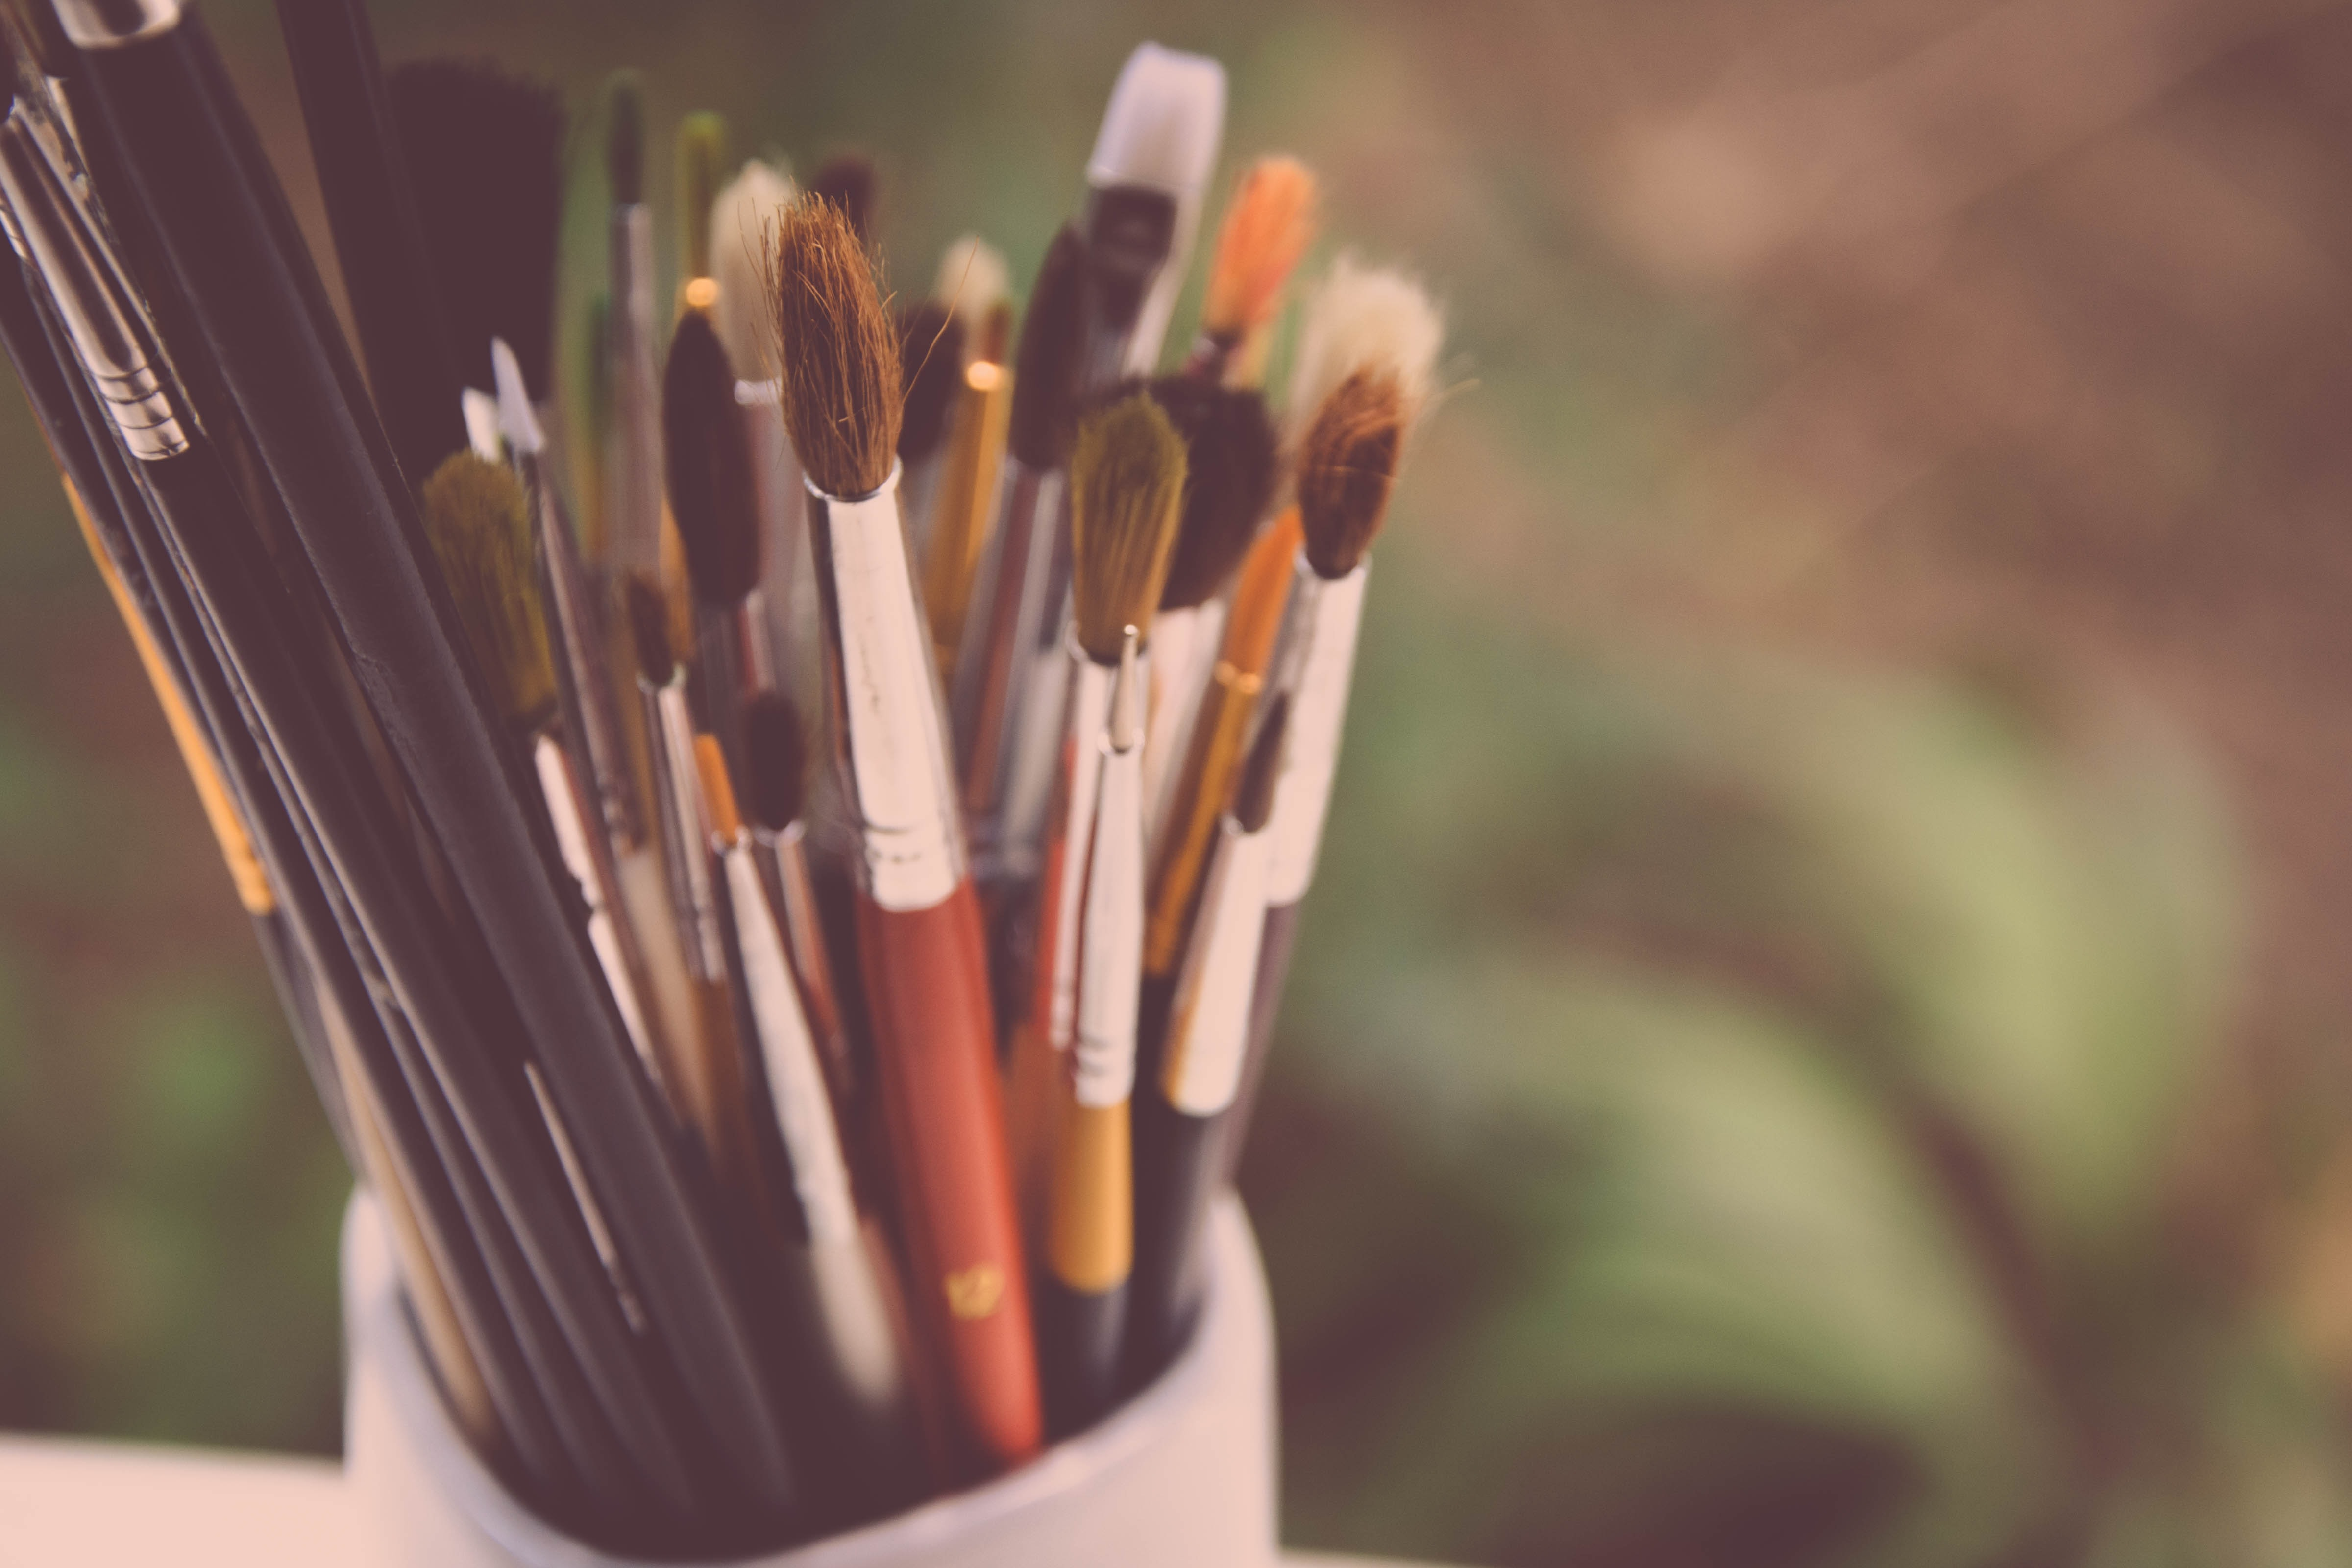 Many paintbrushes in a cup